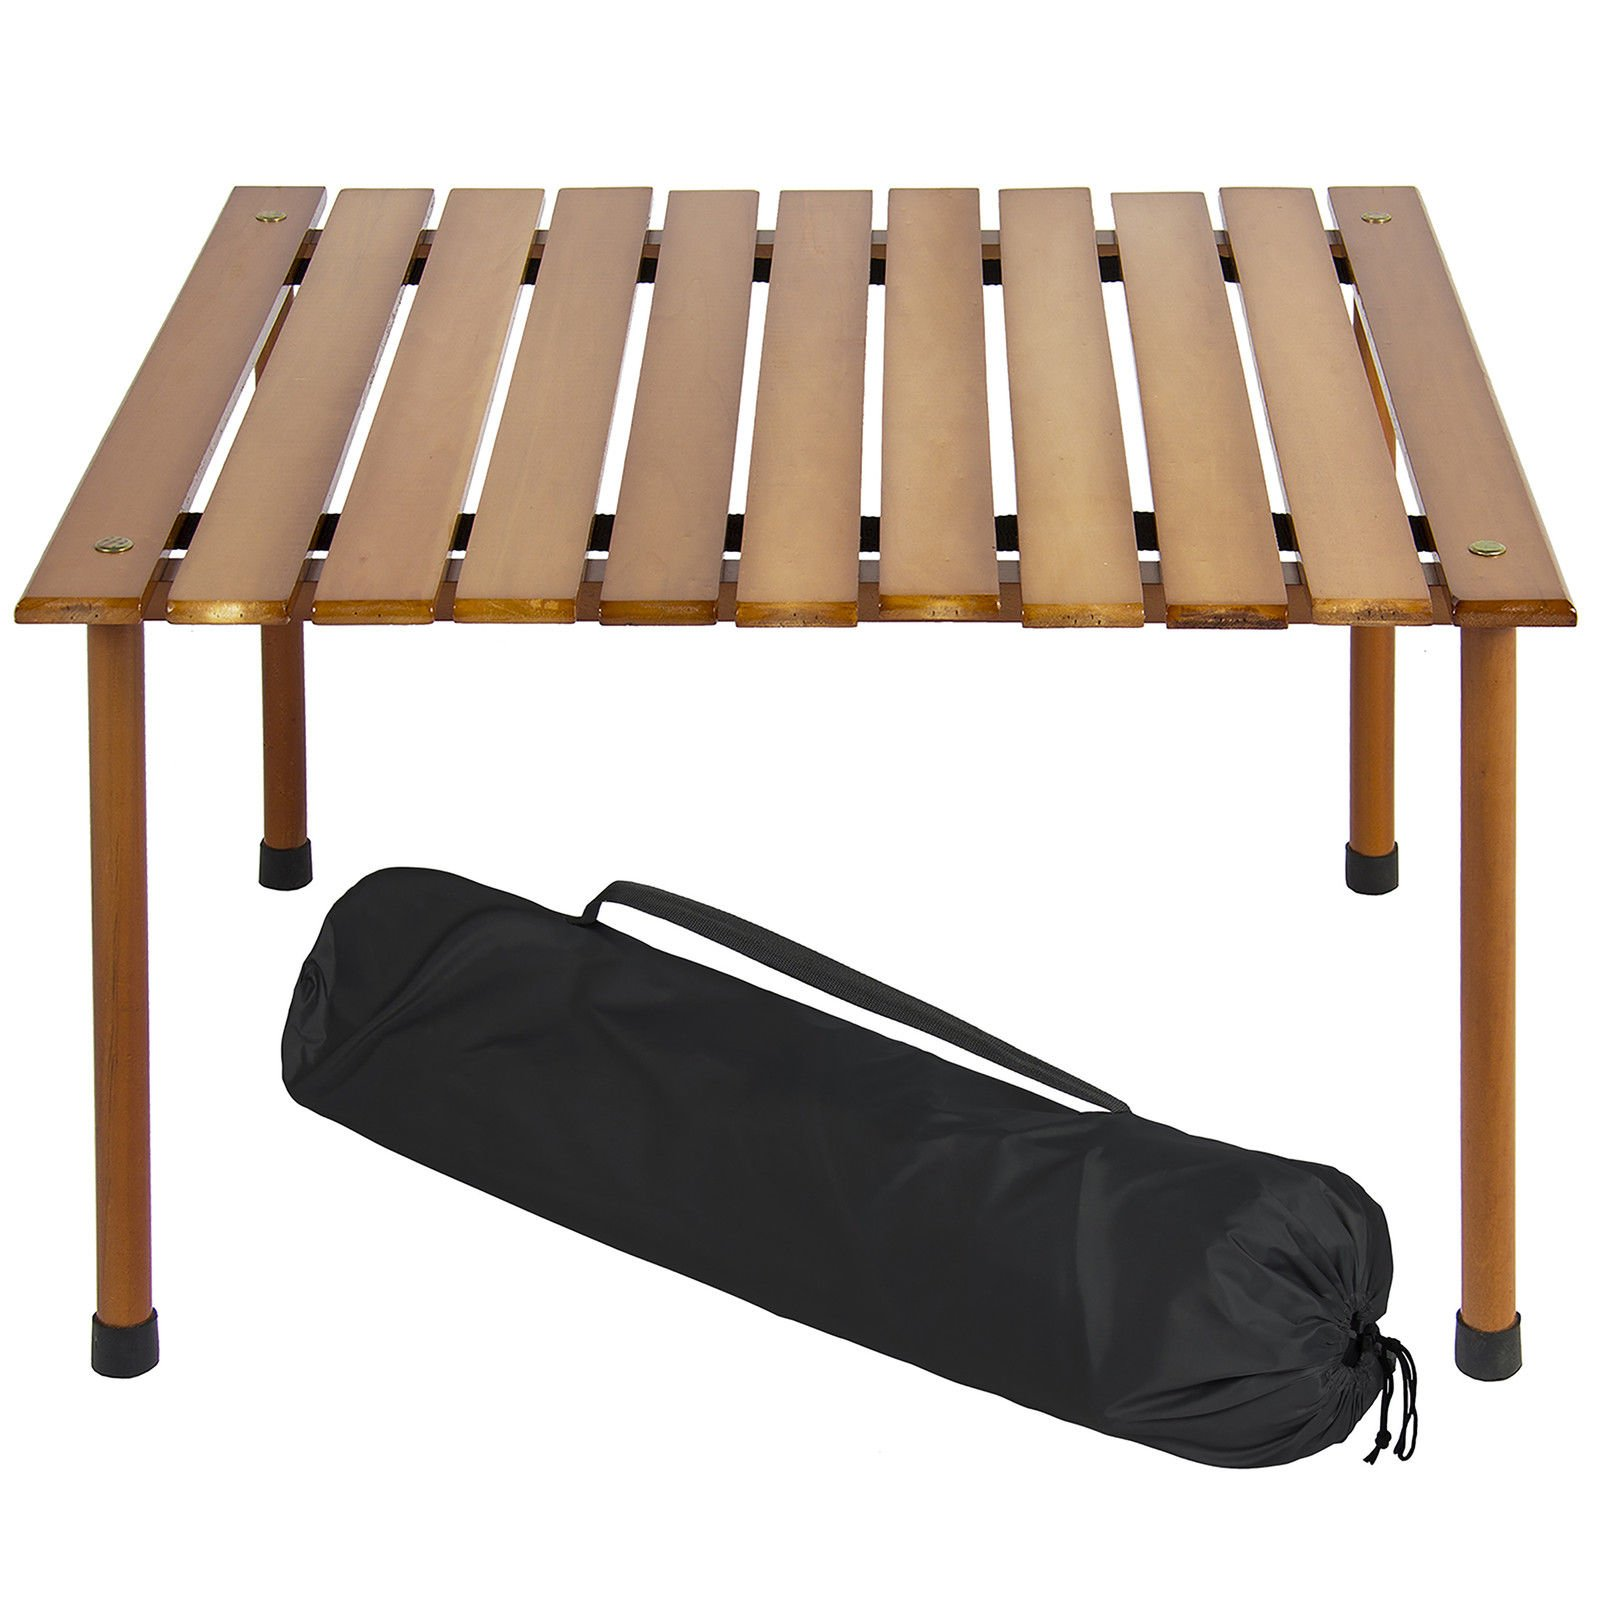 Portable Camping Wooden Table With Carrying Case Picnic Backyard